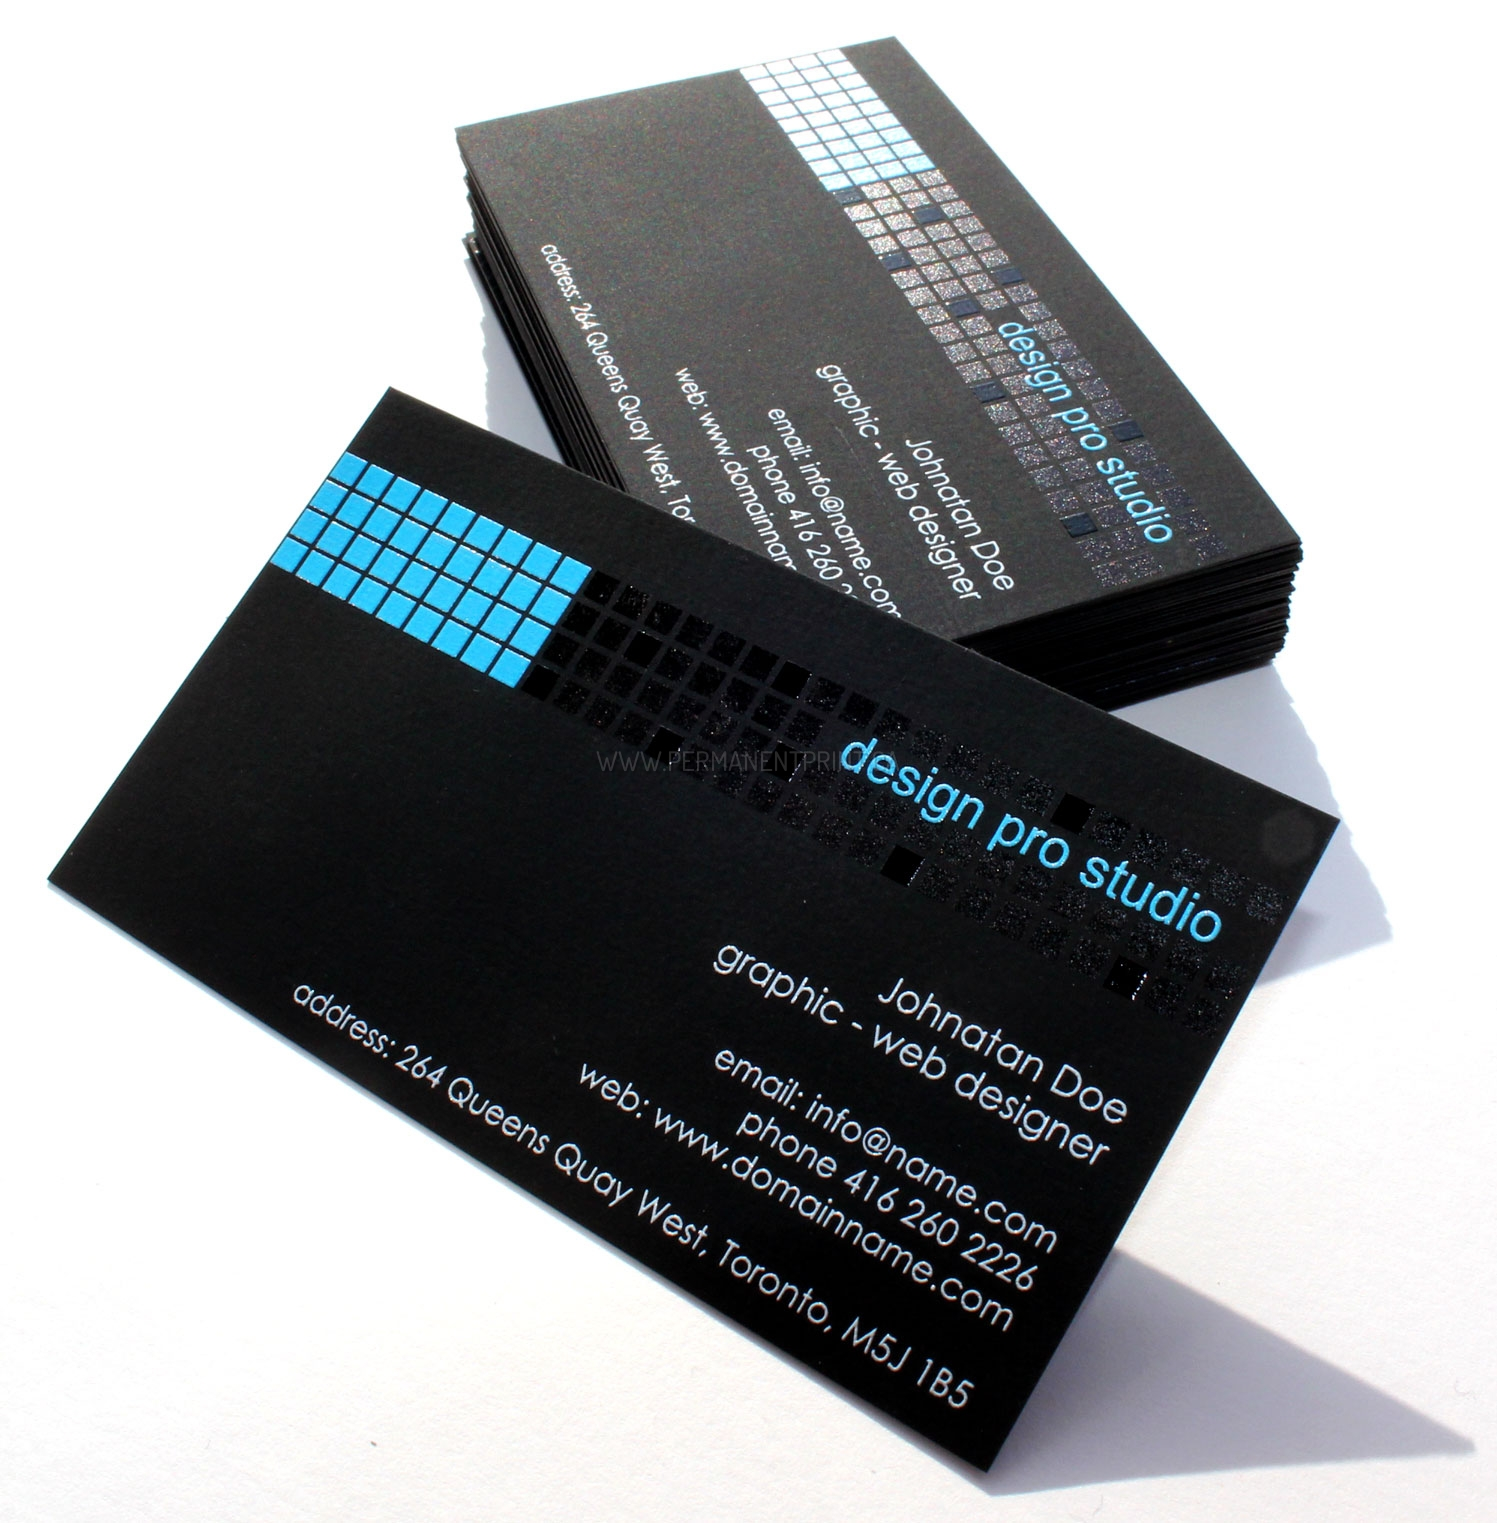 Custom Card Template bussiness card : Unique Business Cards Archives - PERMANENT PRINT